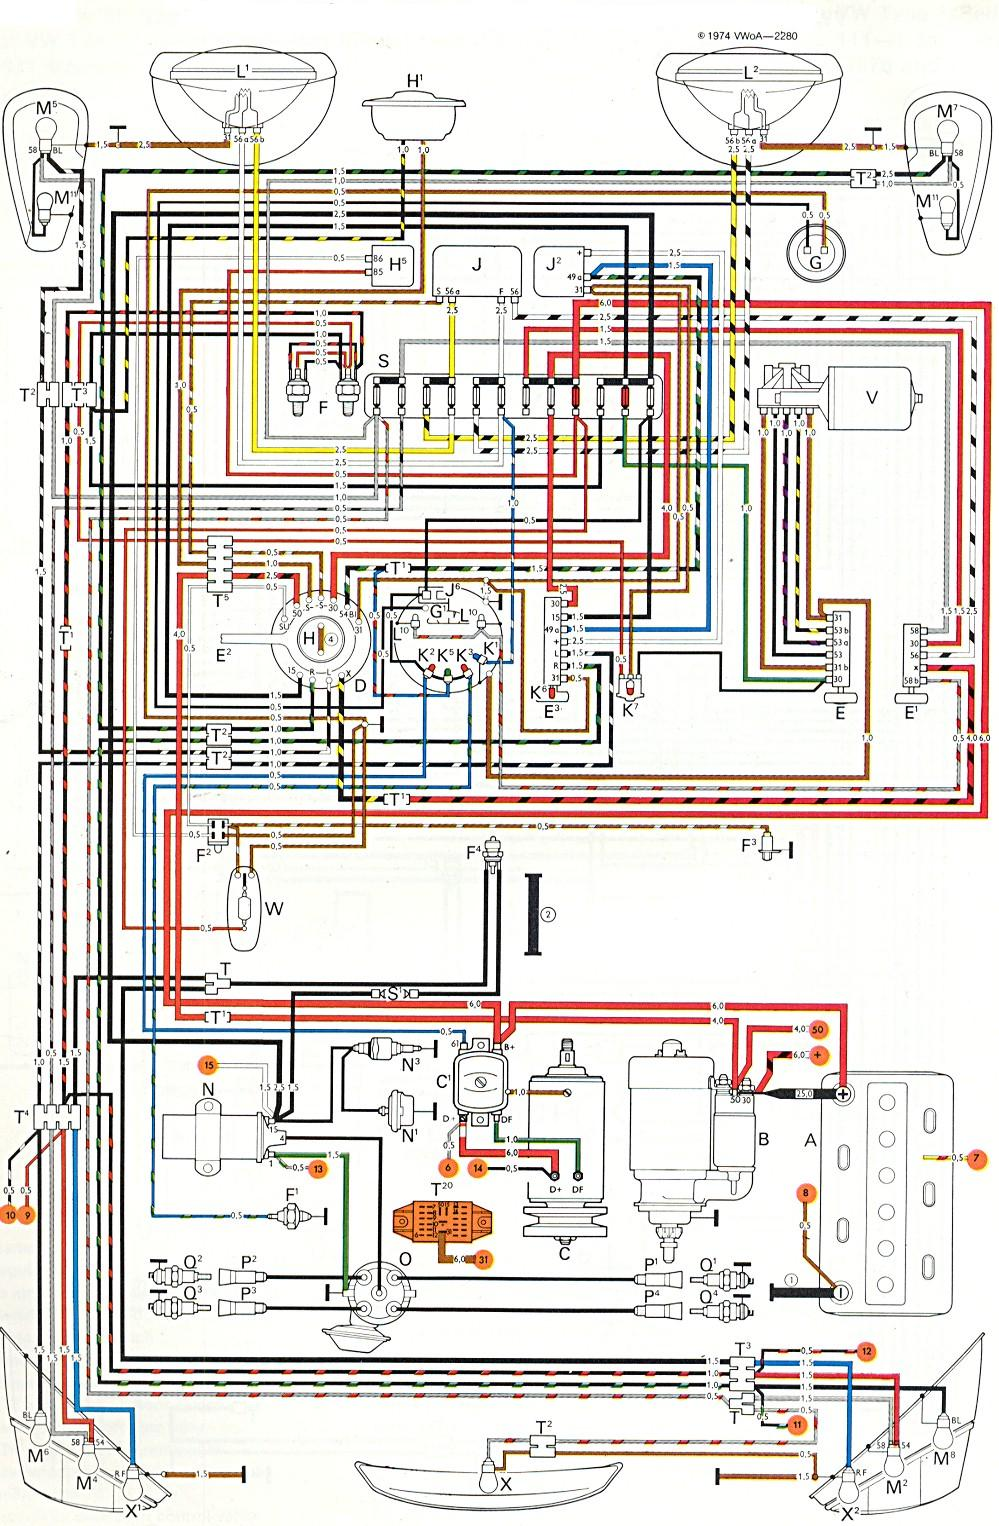 Tremendous 74 Vw Engine Diagram Today Diagram Data Schema Wiring Digital Resources Funapmognl